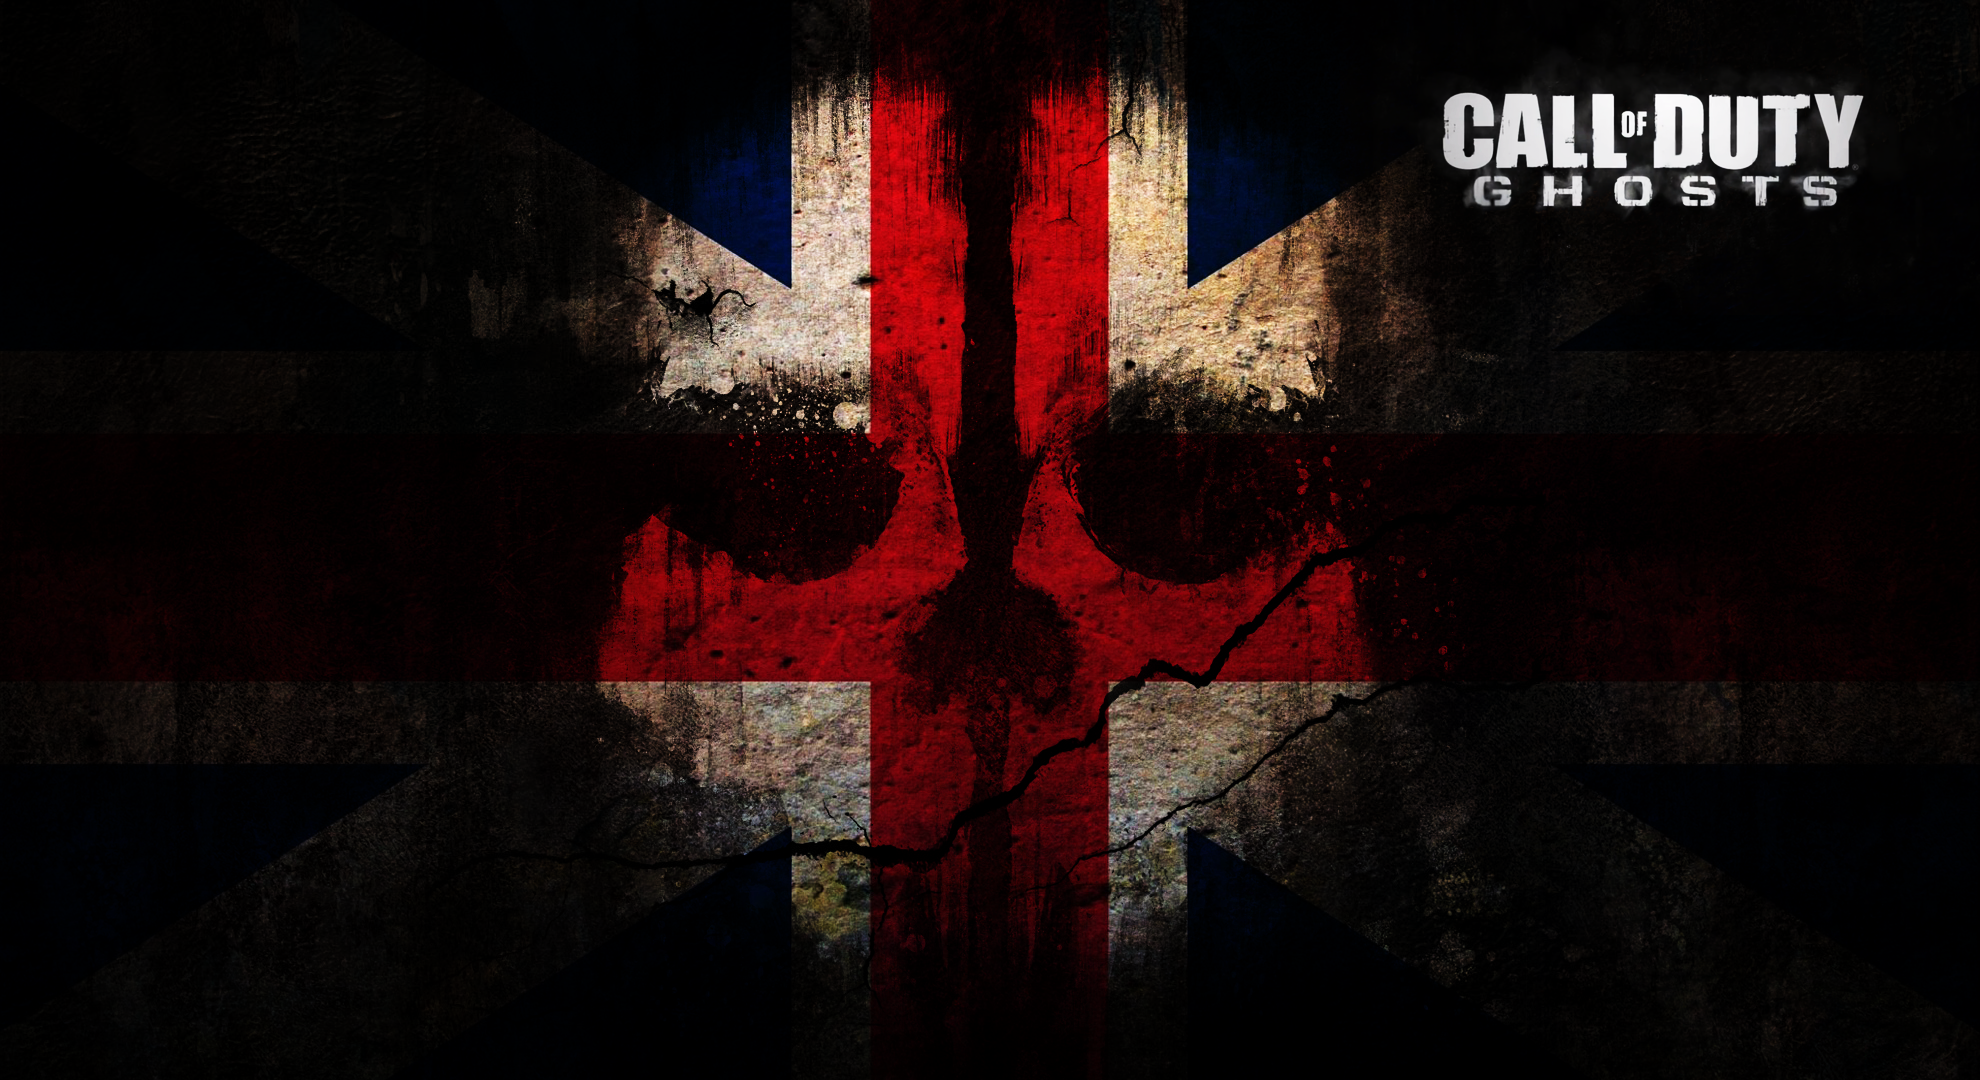 Call Of Duty Ghosts Wallpaper 1080p By Sorr535771 On Deviantart